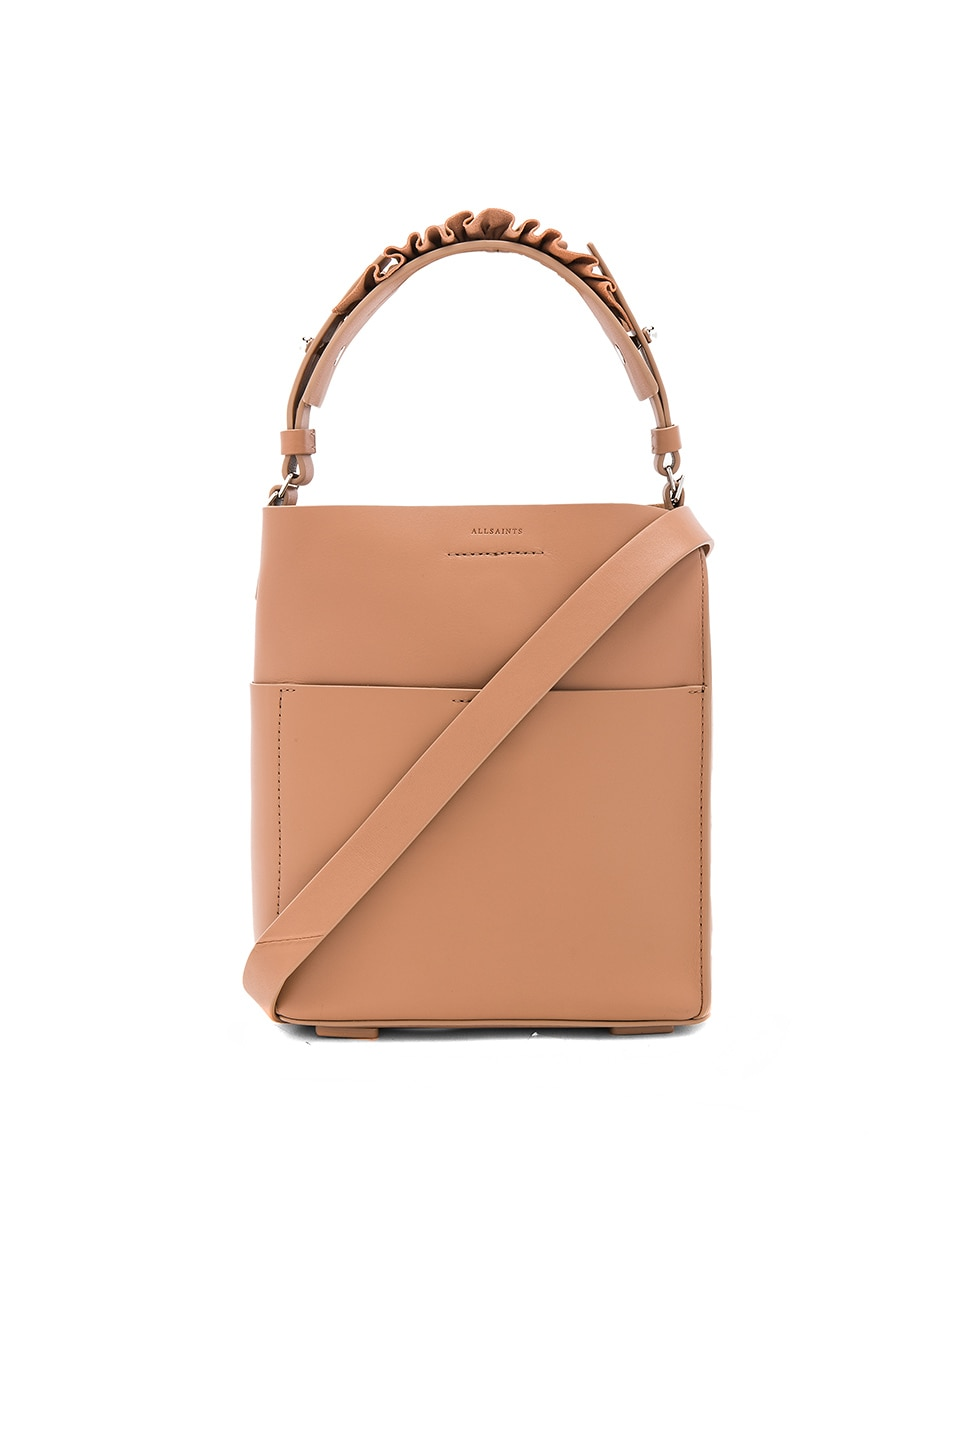 ALLSAINTS Maya Mini Tote in Light Caramel